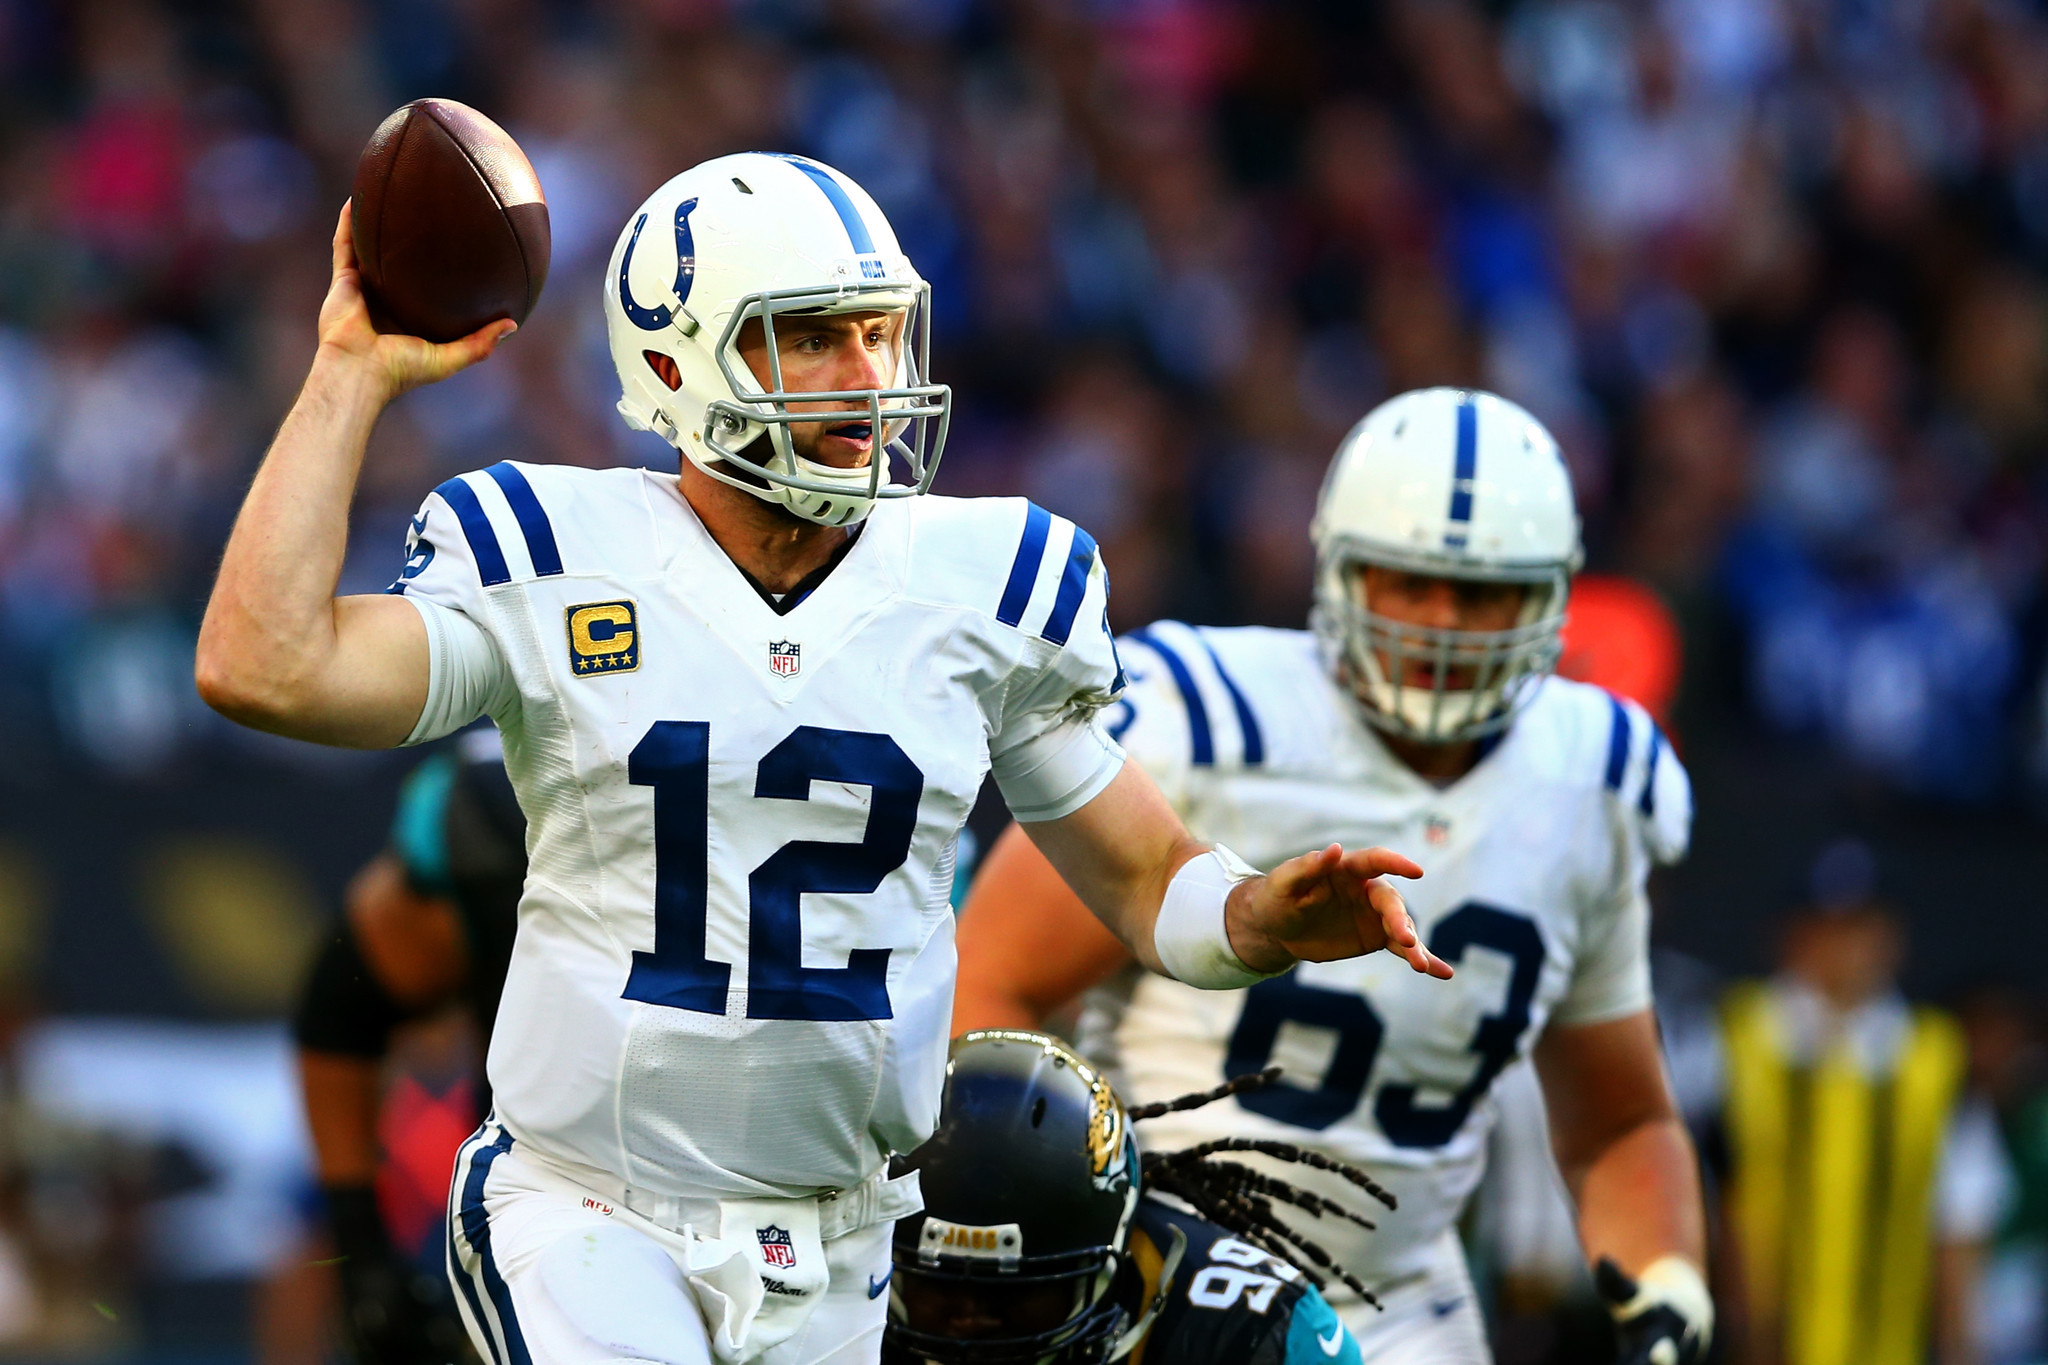 Ct-andrew-luck-bears-colts-huddle-up-spt-1008-20161007